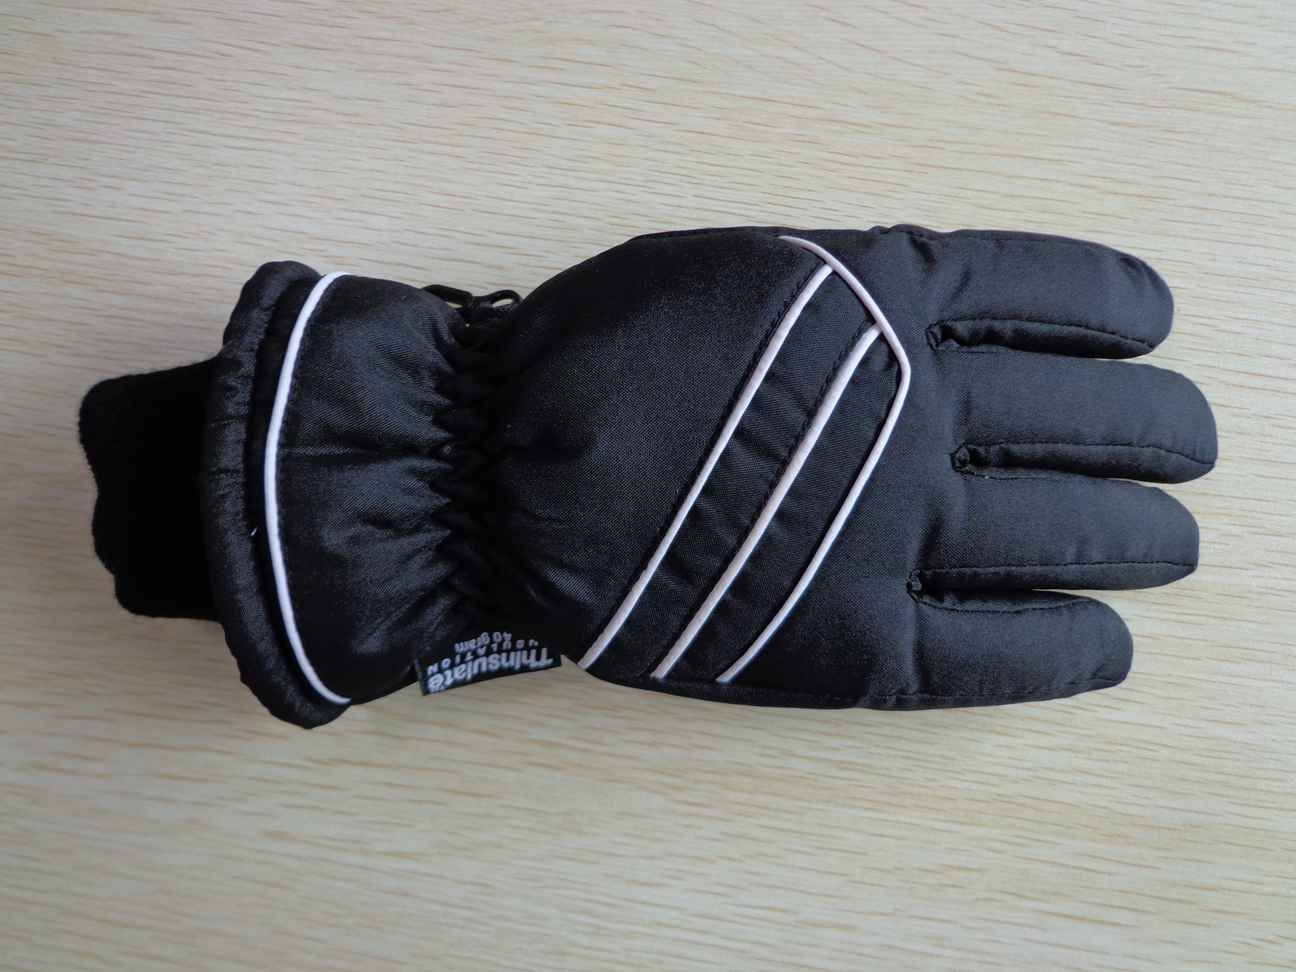 Supply ski gloves